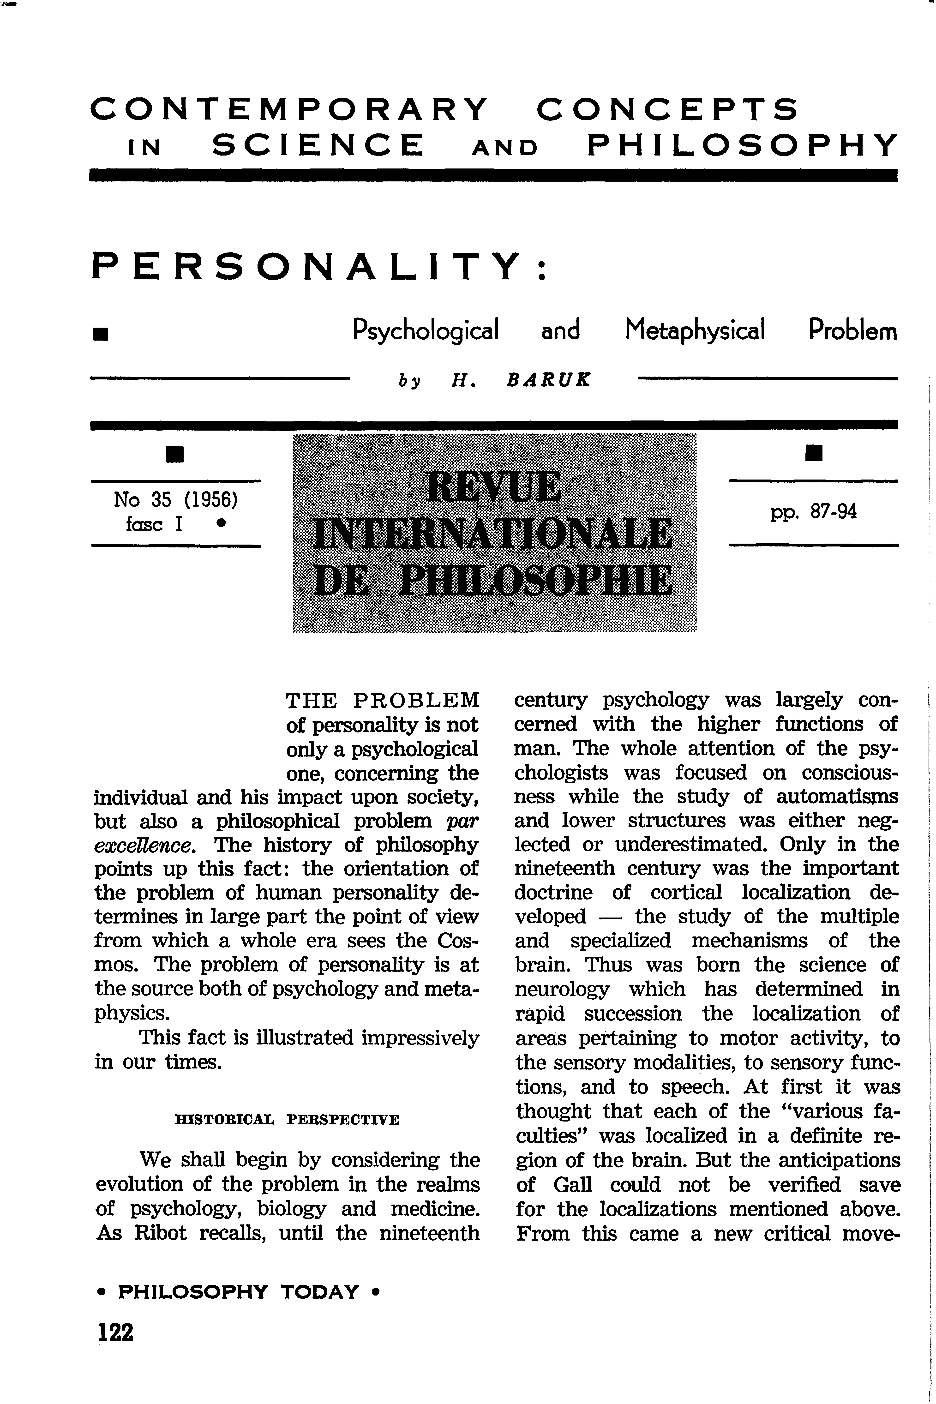 Personality: a psychological and metaphysical problem - H